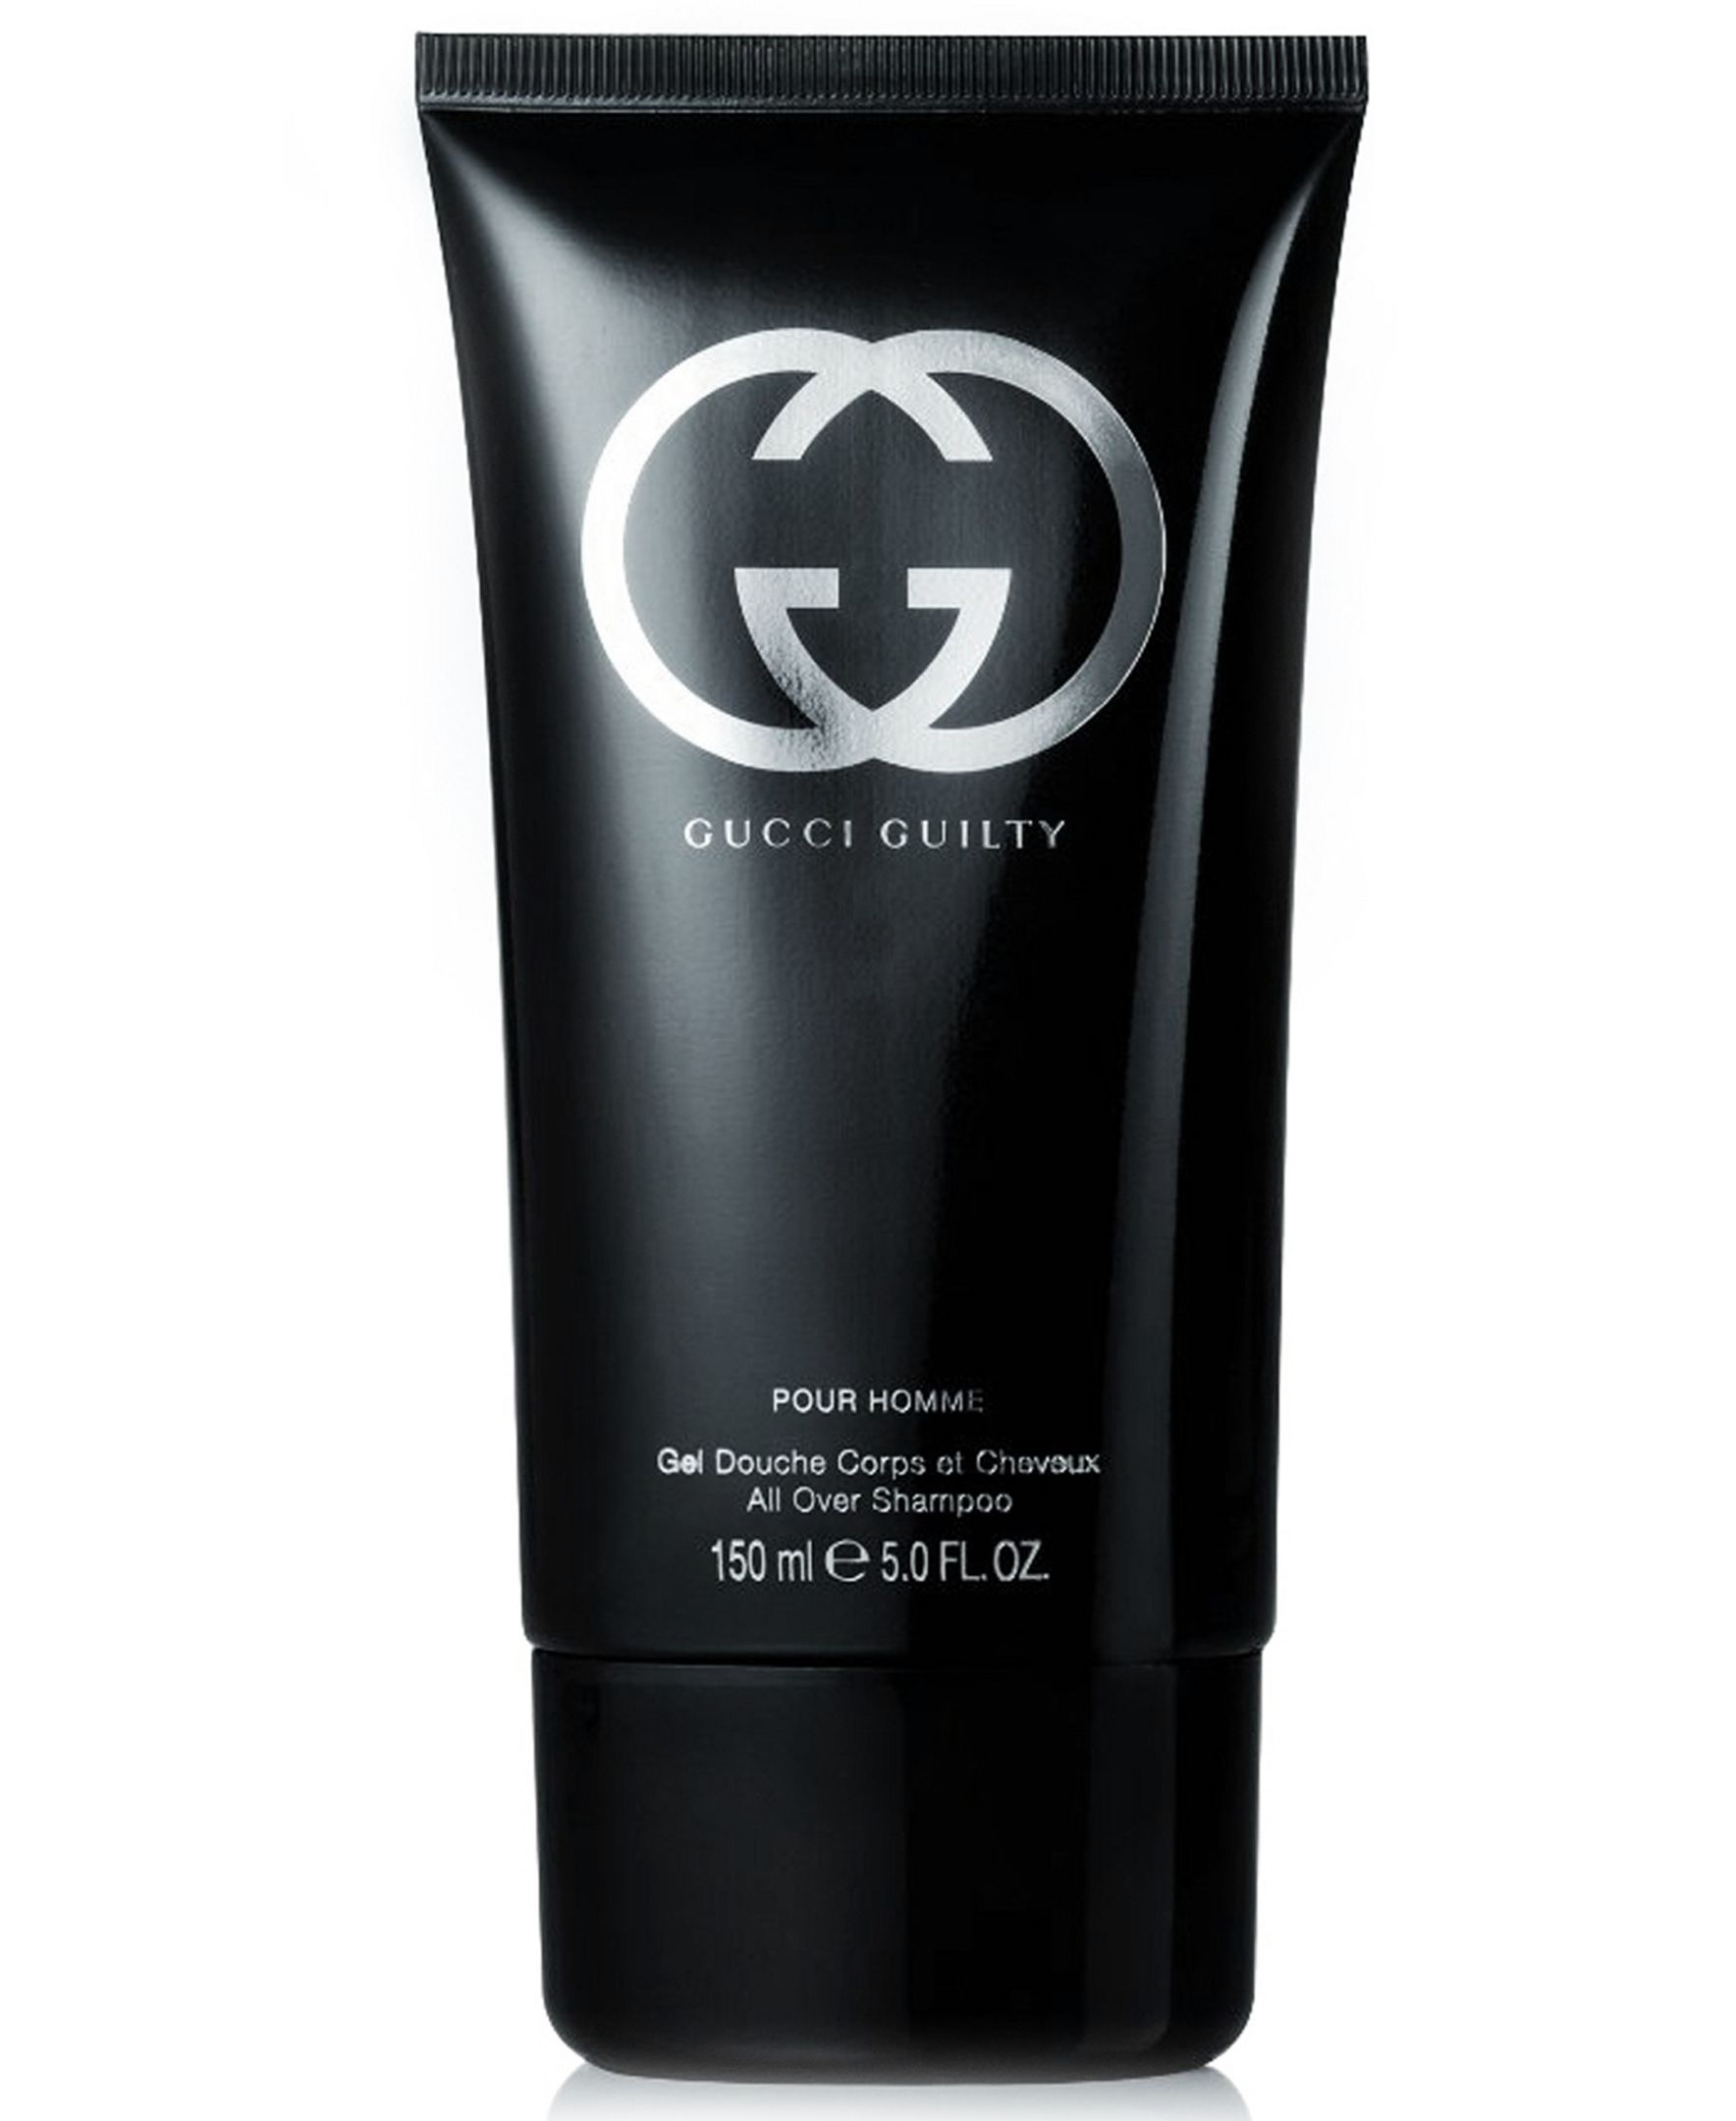 e0f7e2627 Gucci Guilty Pour Homme All Over Shampoo, 5.0 oz | Products | Shower ...